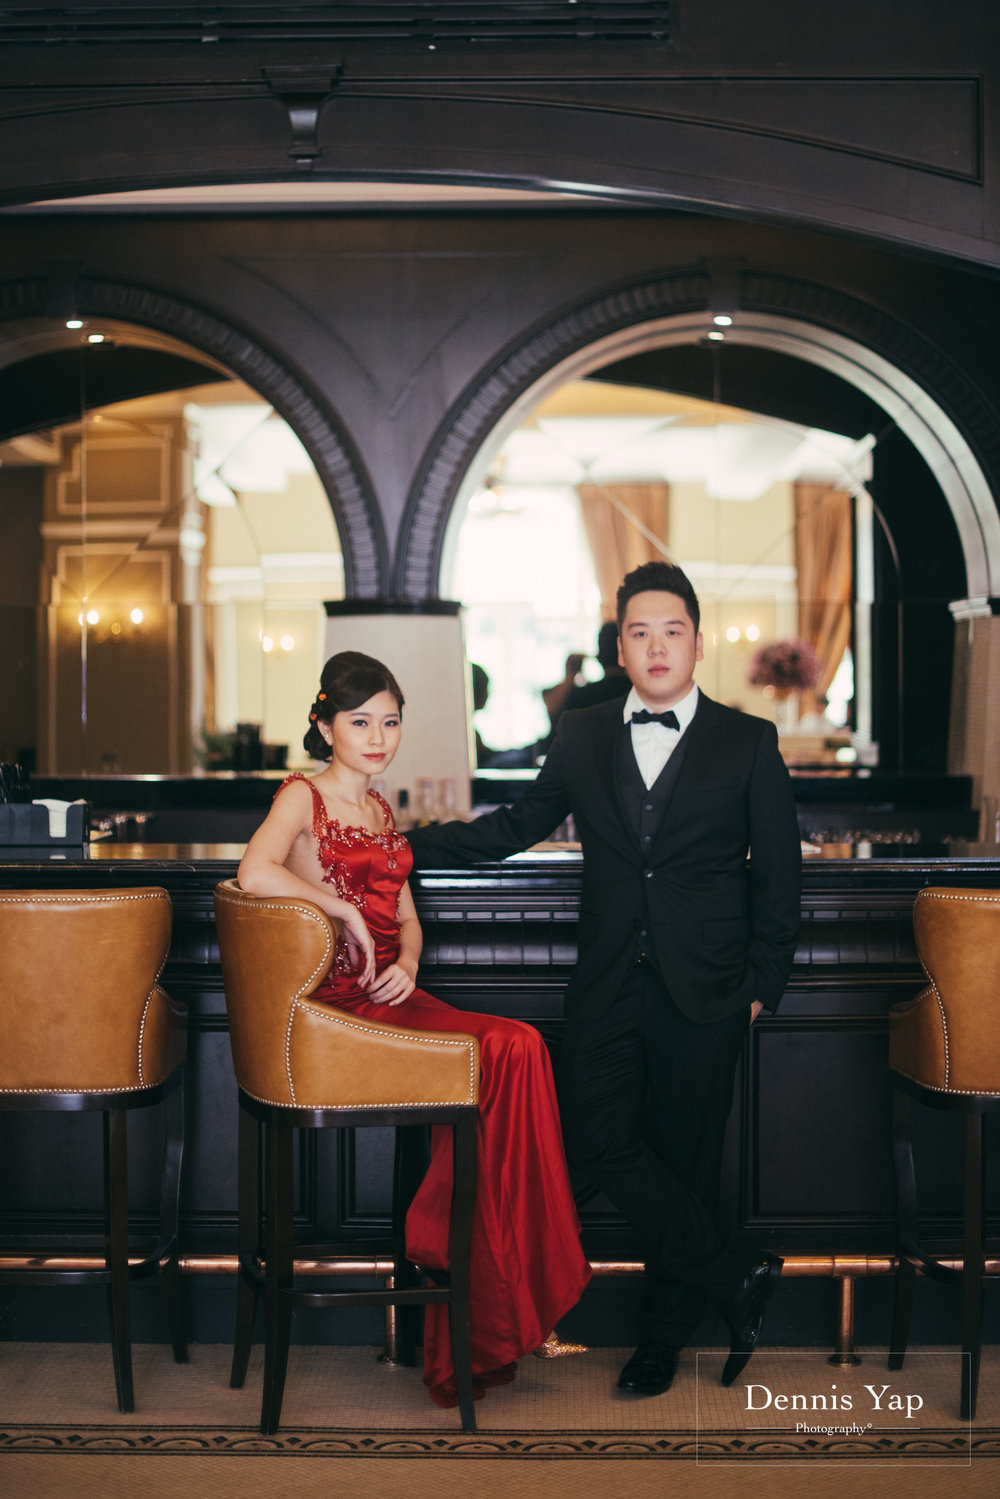 ivan constance pre wedding majestic hotel dennis yap photography luxury style calm serious-6.jpg